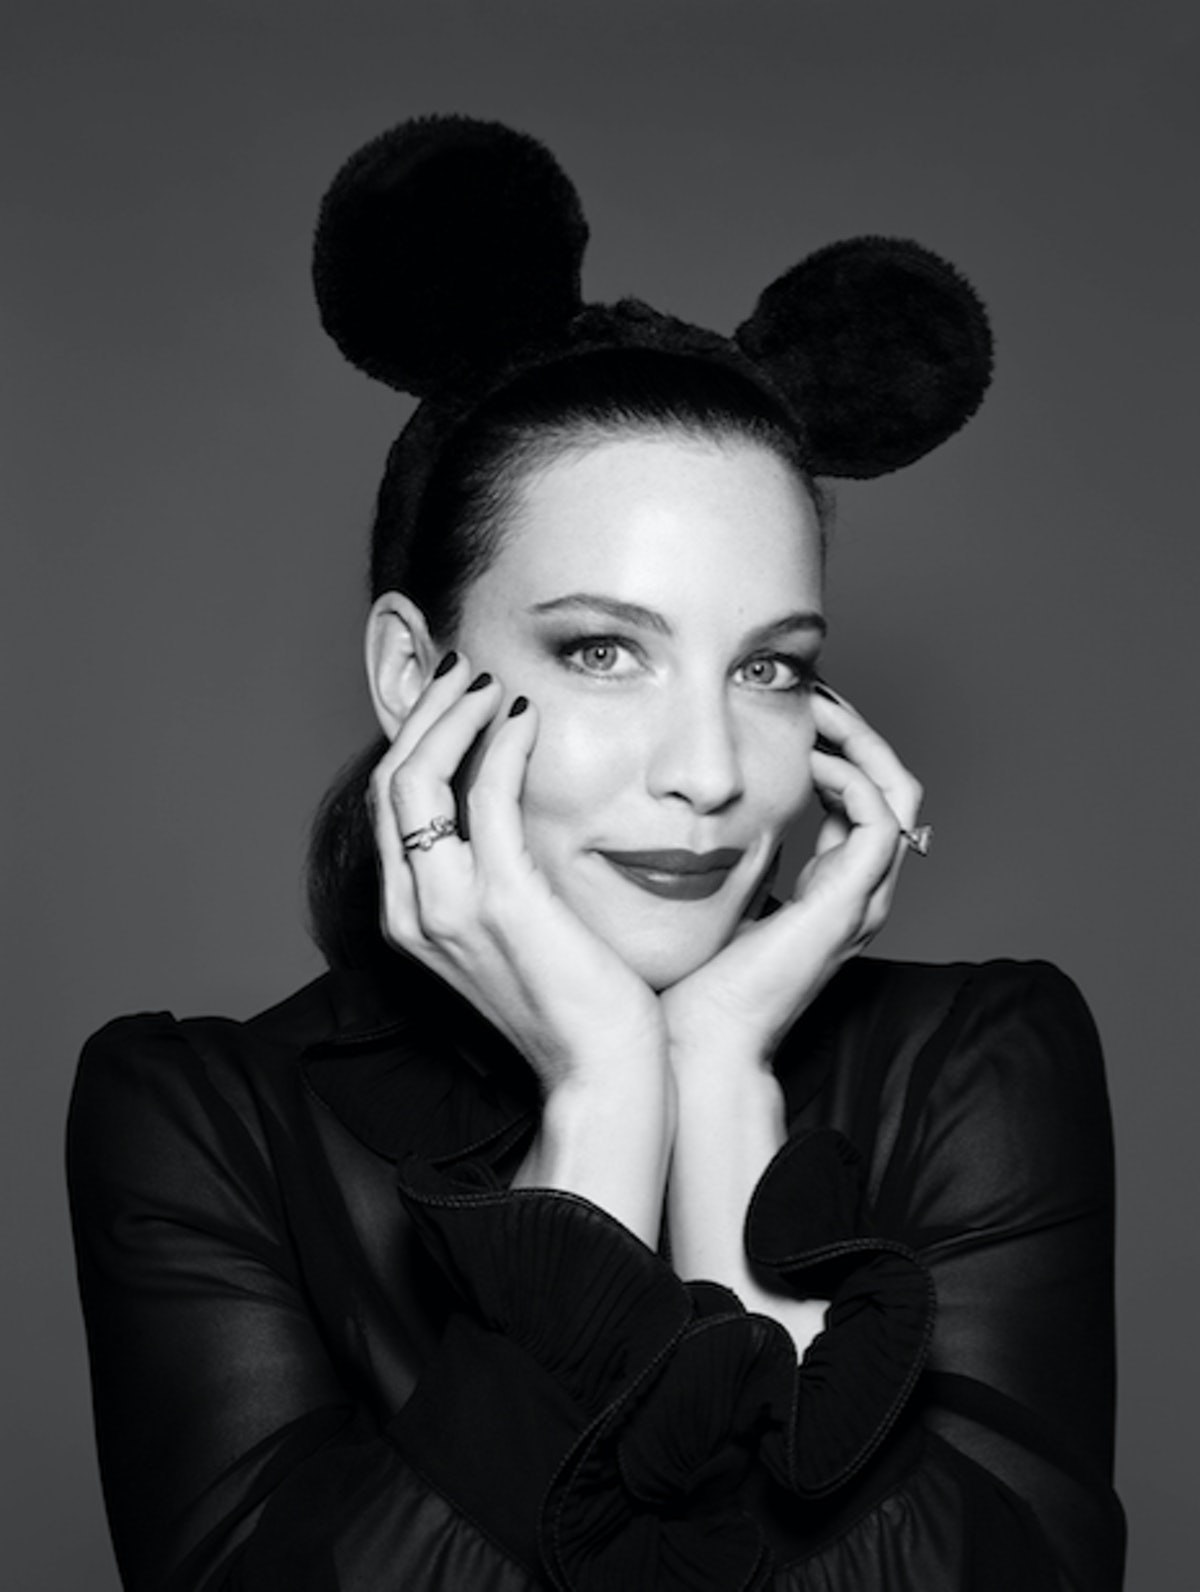 Mickey Mouse & Me